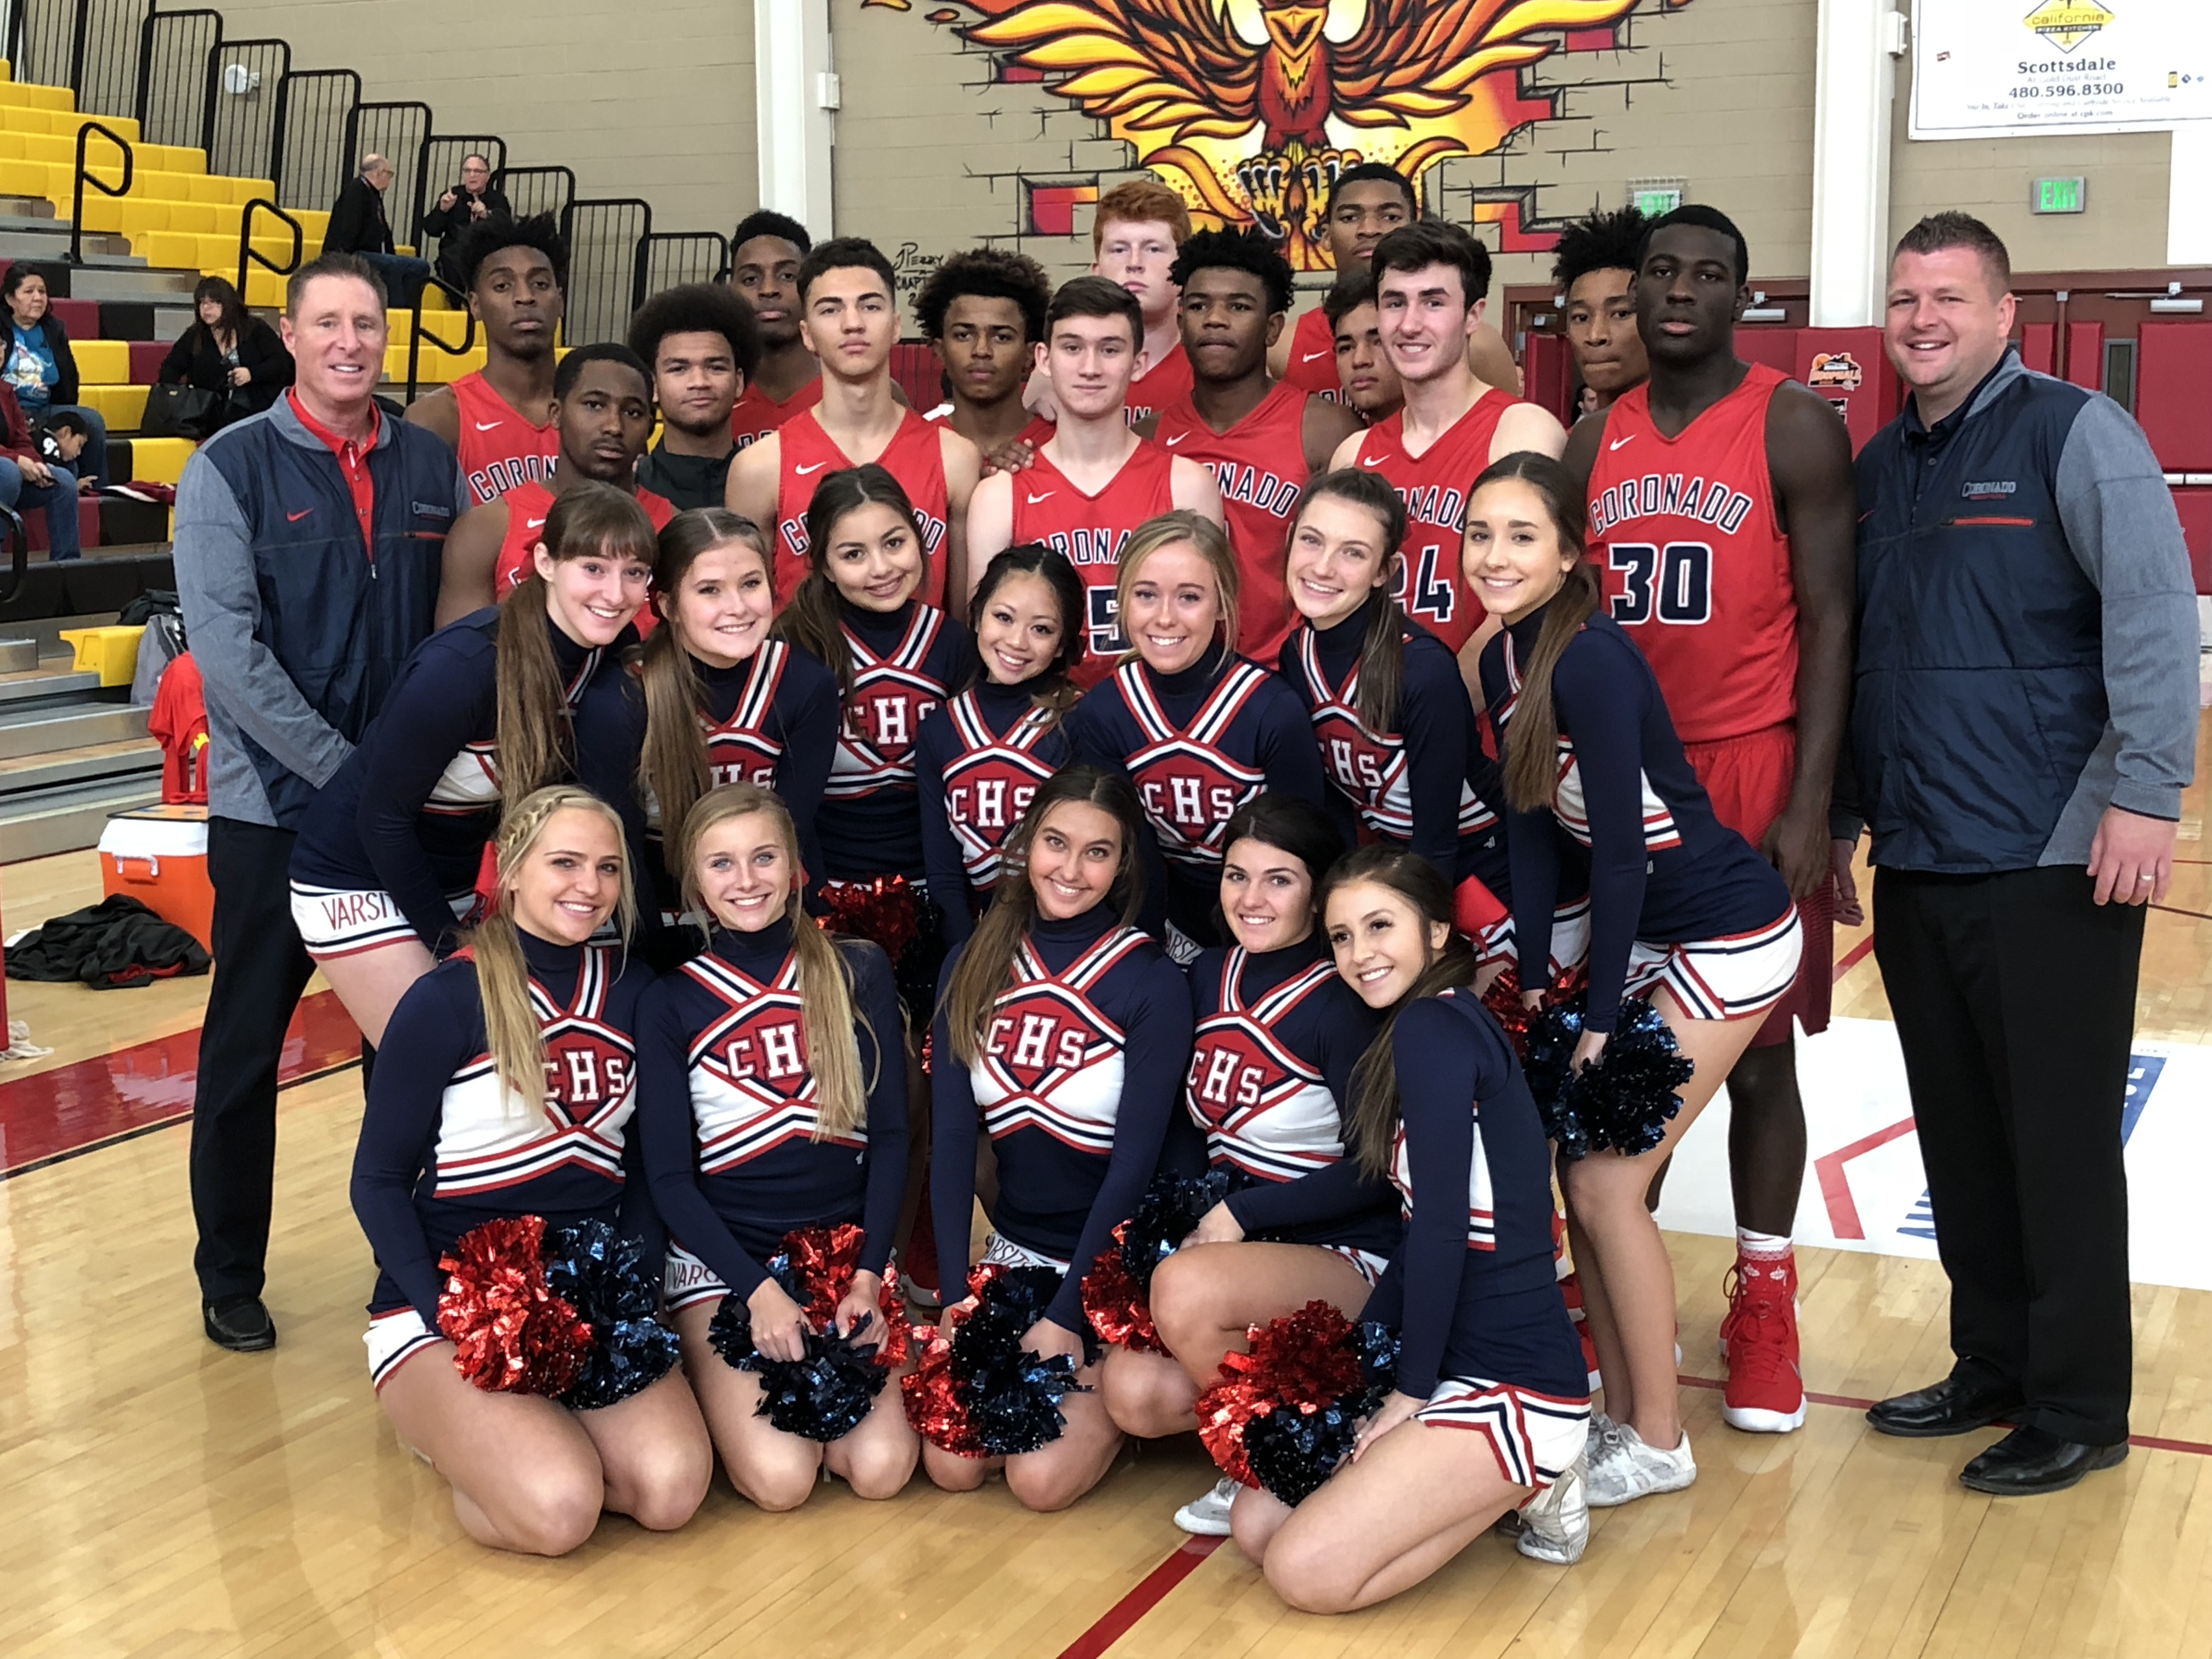 Cougars get win at Hoophall